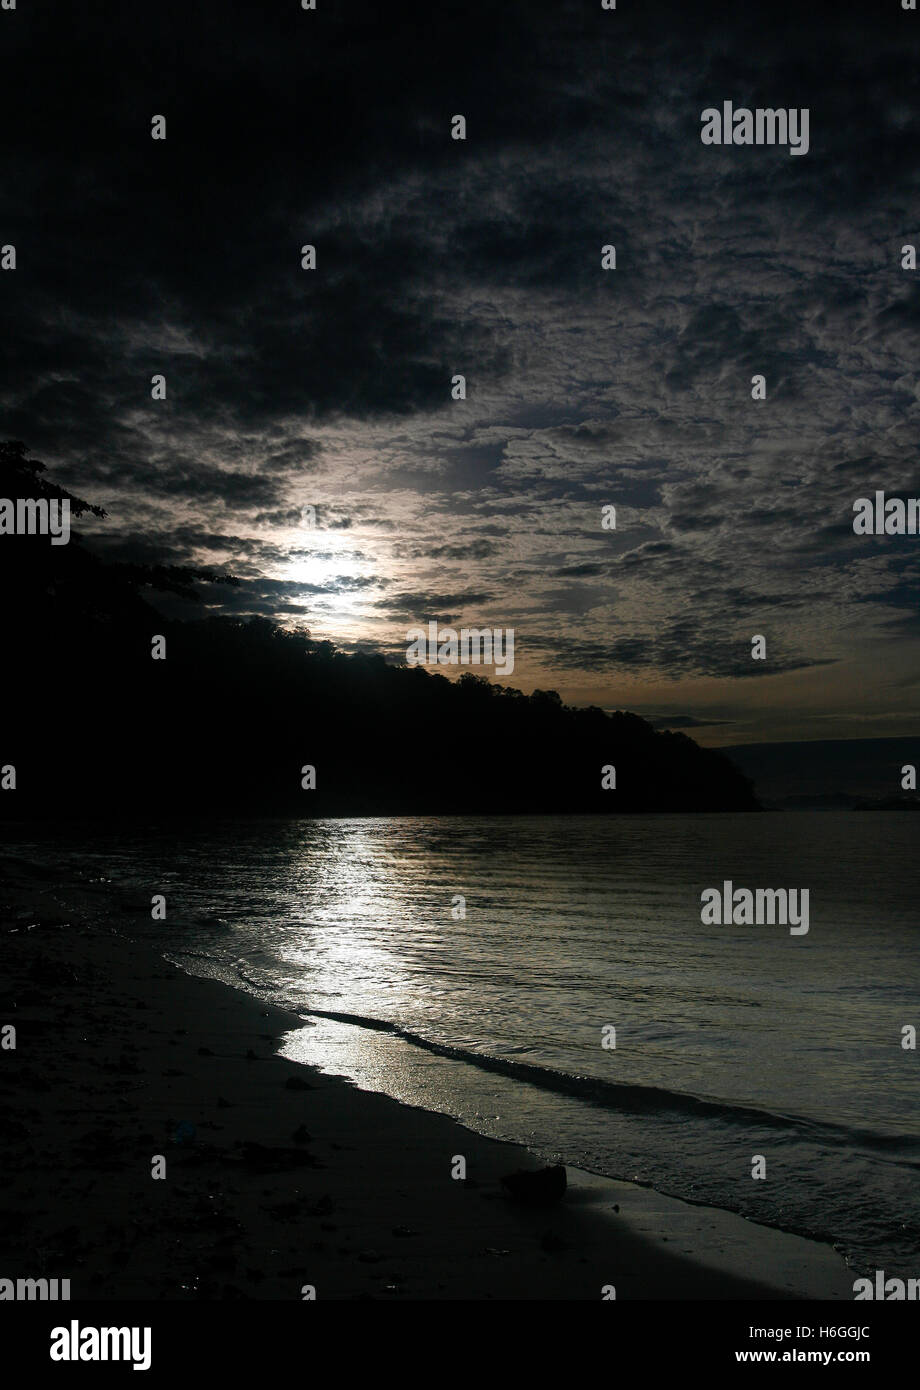 Inhabited island. Gorontalo, Sulawesi. Indonesia Stock Photo